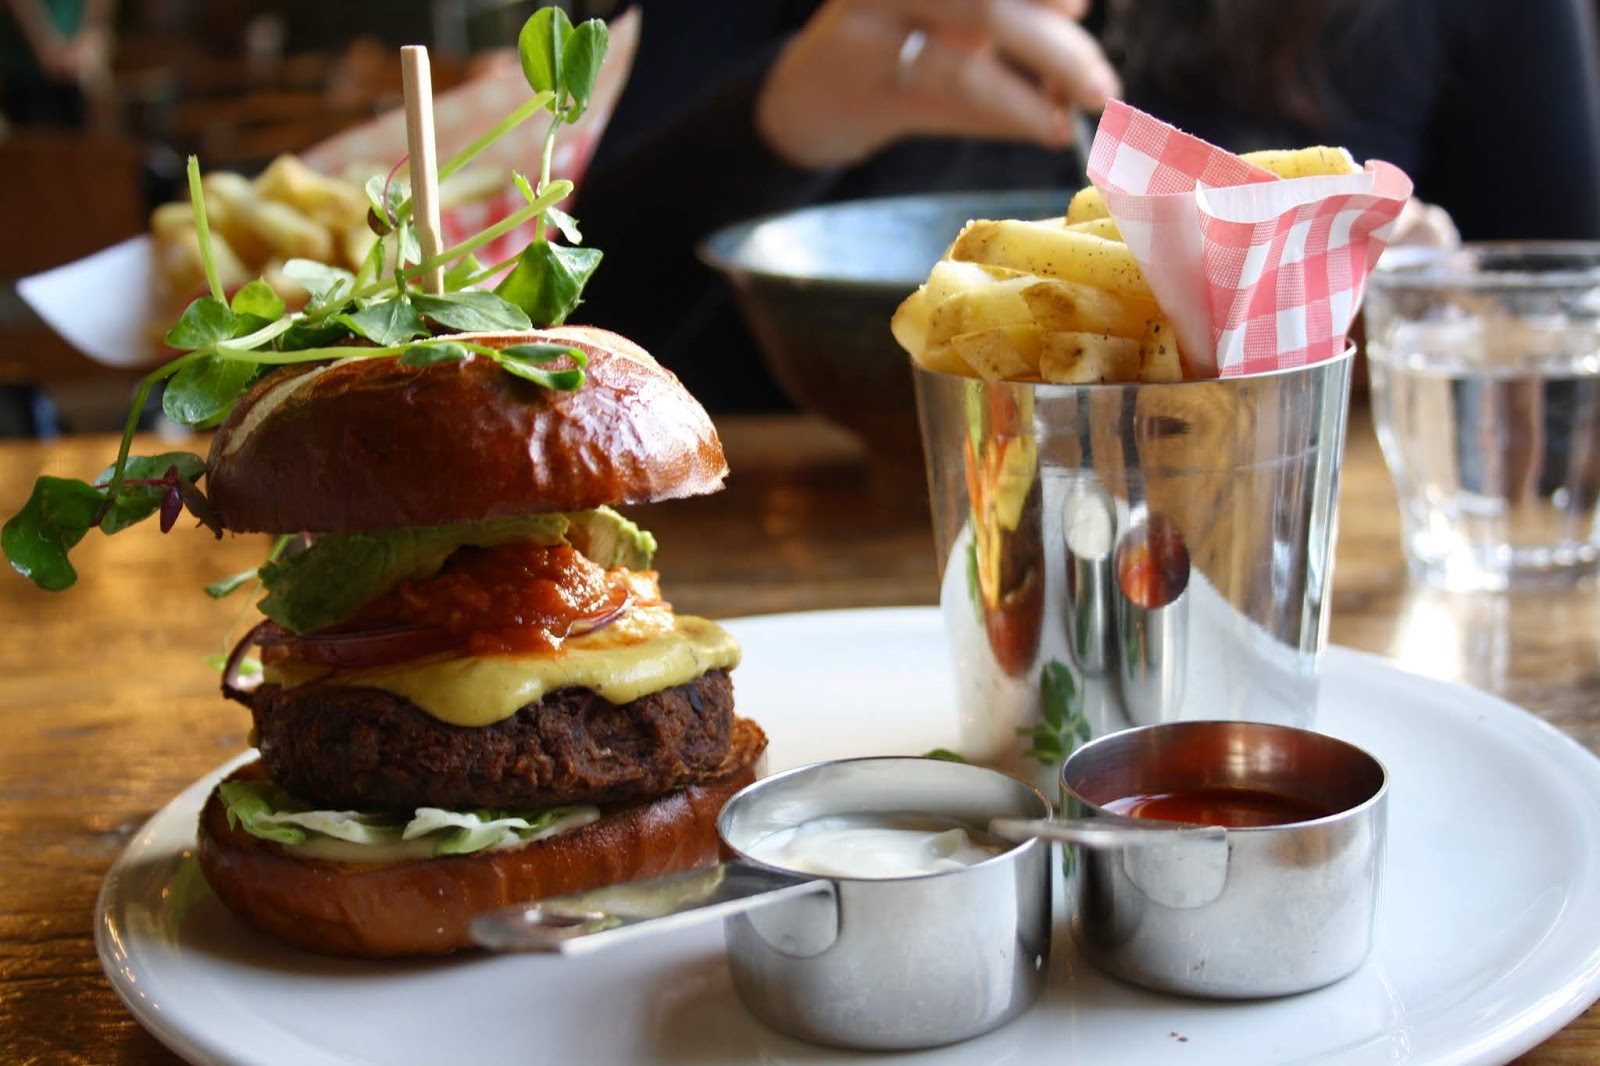 the ultimate vegan burger and Himalayan salted fries at natural bar and kitchen, Birmingham